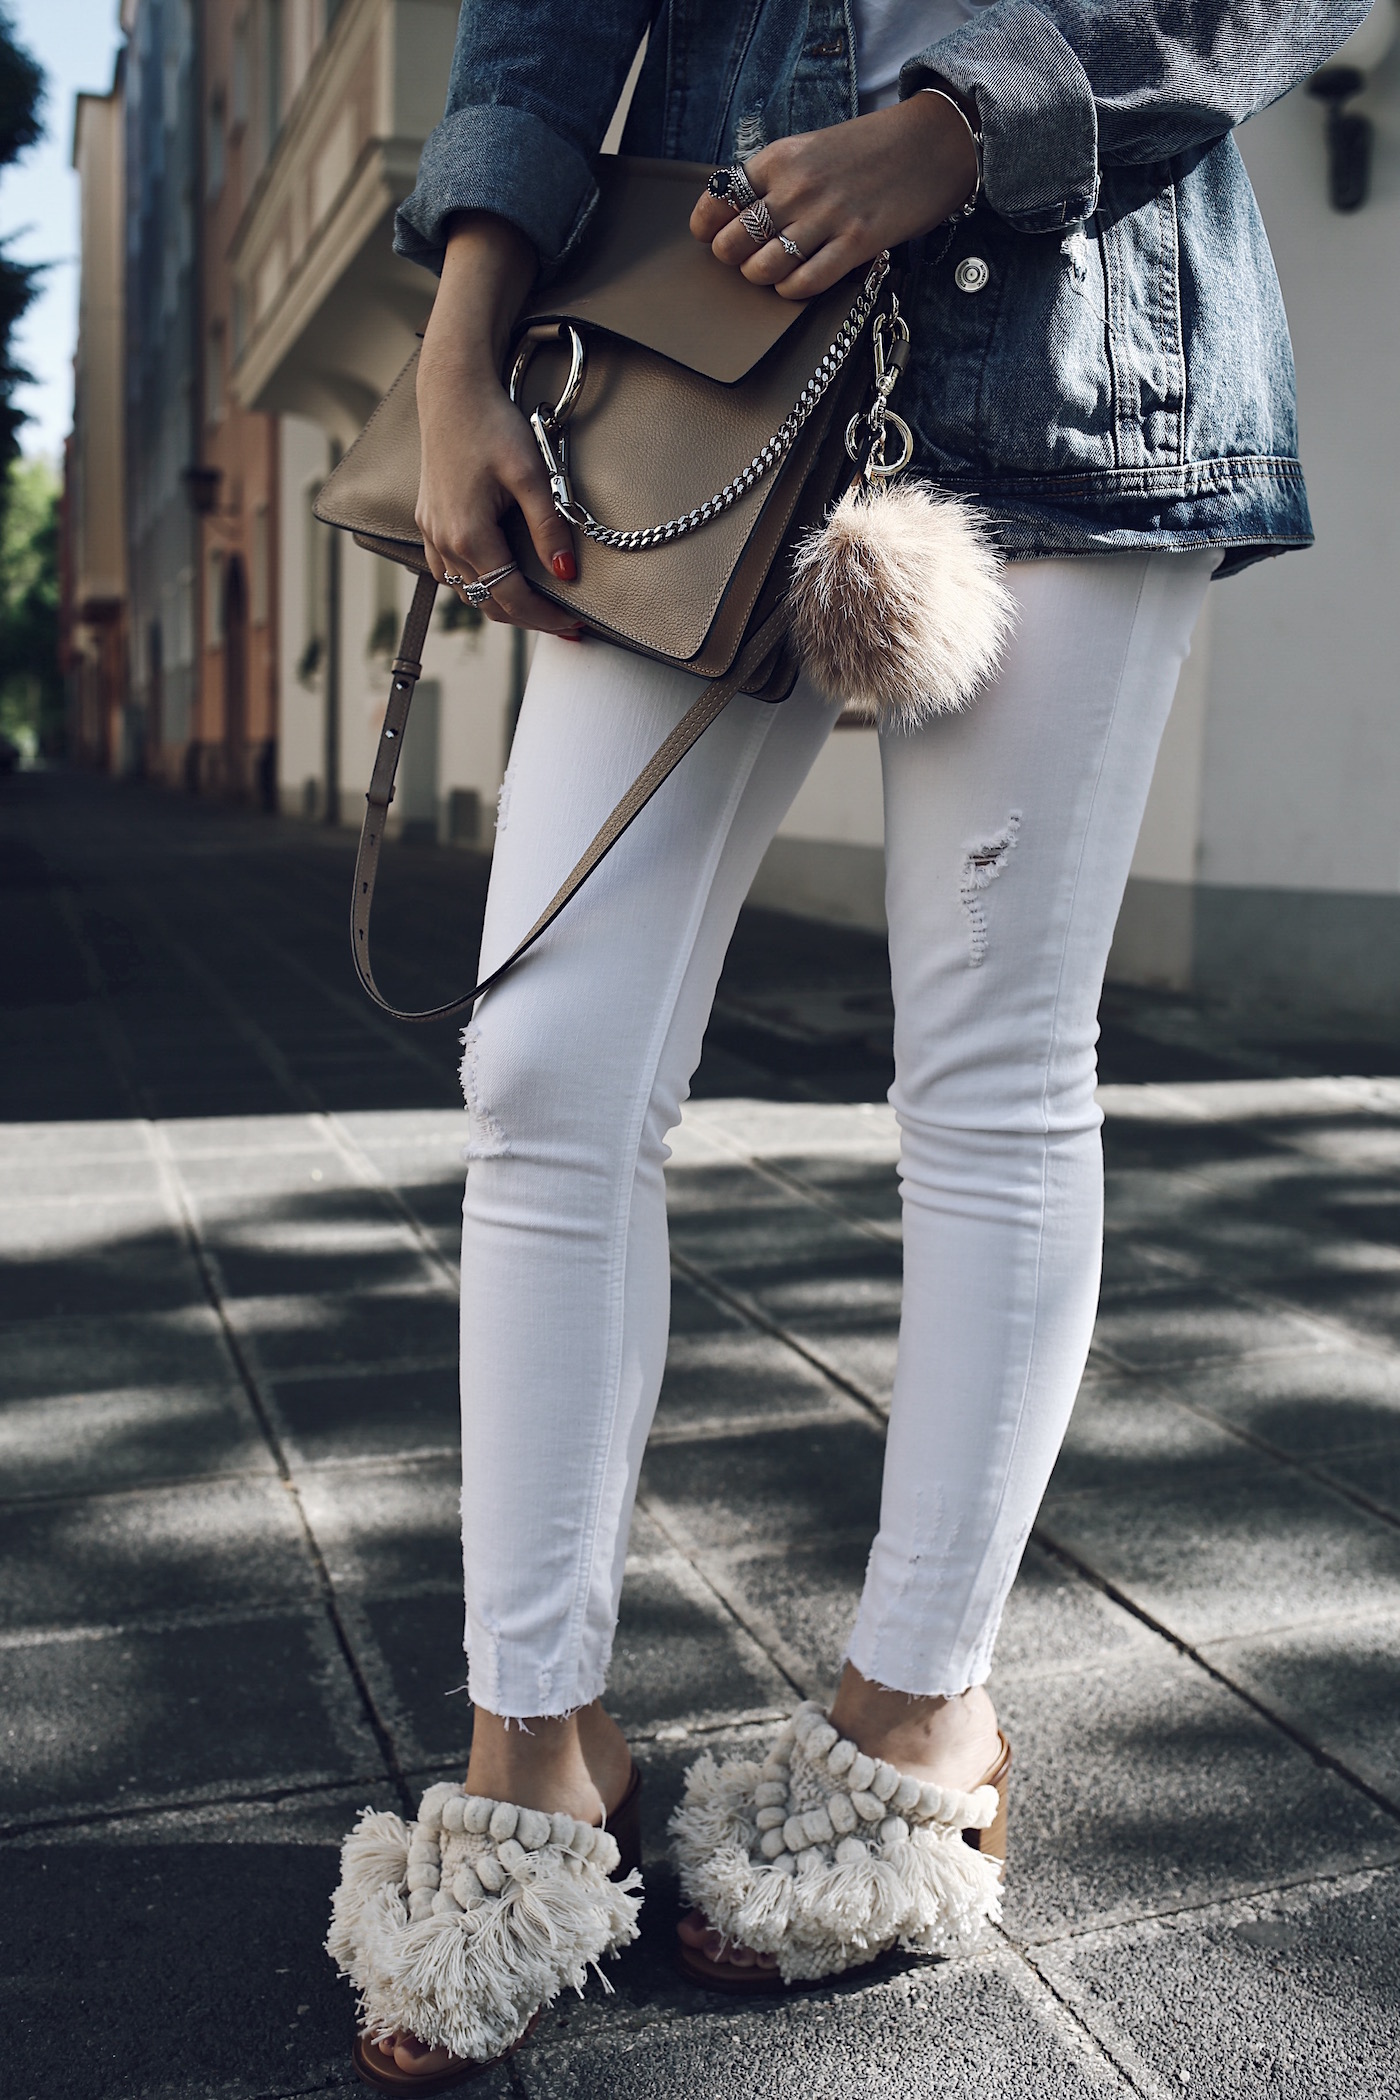 Denim Jacket Outfit for Summer 2017   Want Get Repeat Fashion Blog from Nuremberg Erlangen Germany